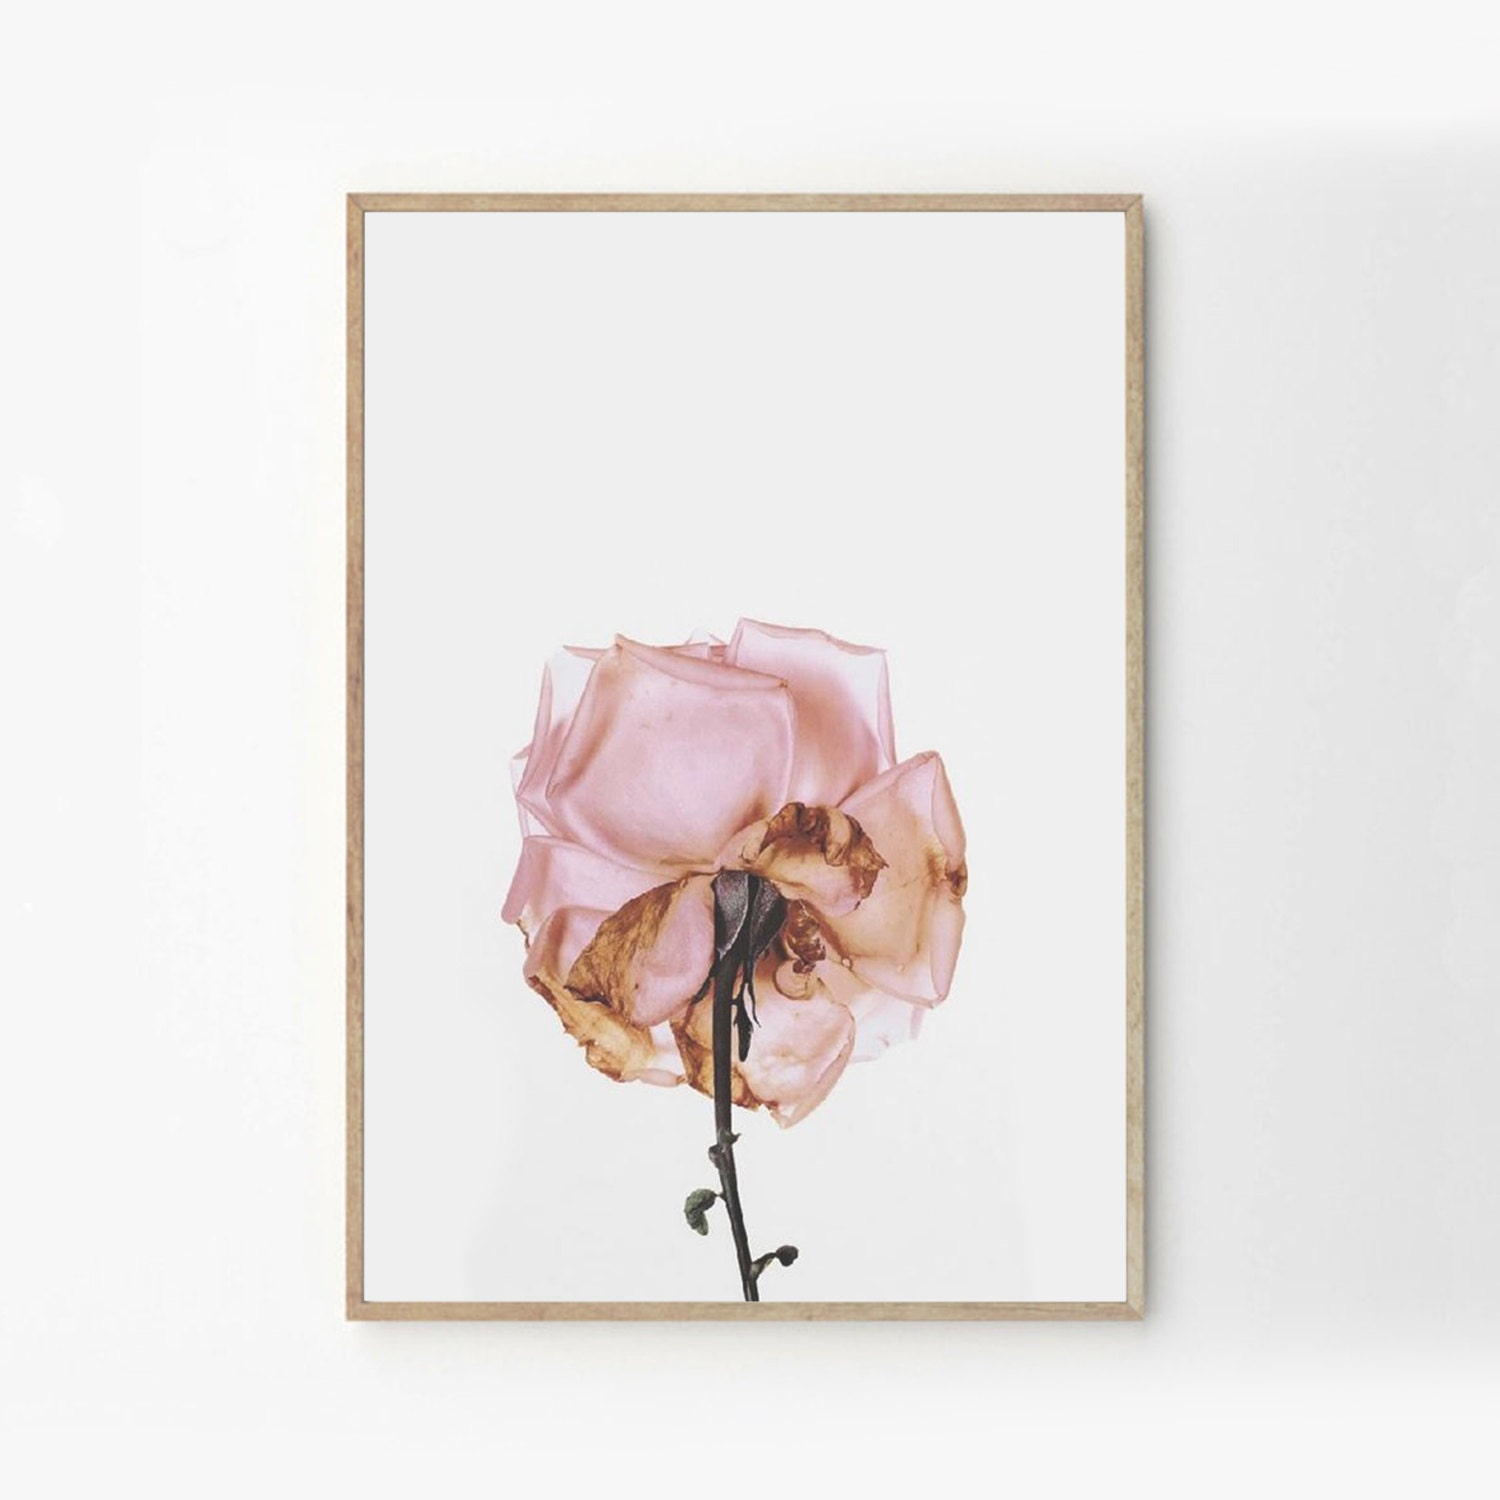 Pretty As A Picture - Floral Photography - Nature Photography - Botnical - Art & Collectibles - Digital Prints - Pink - Rose Print - Peach